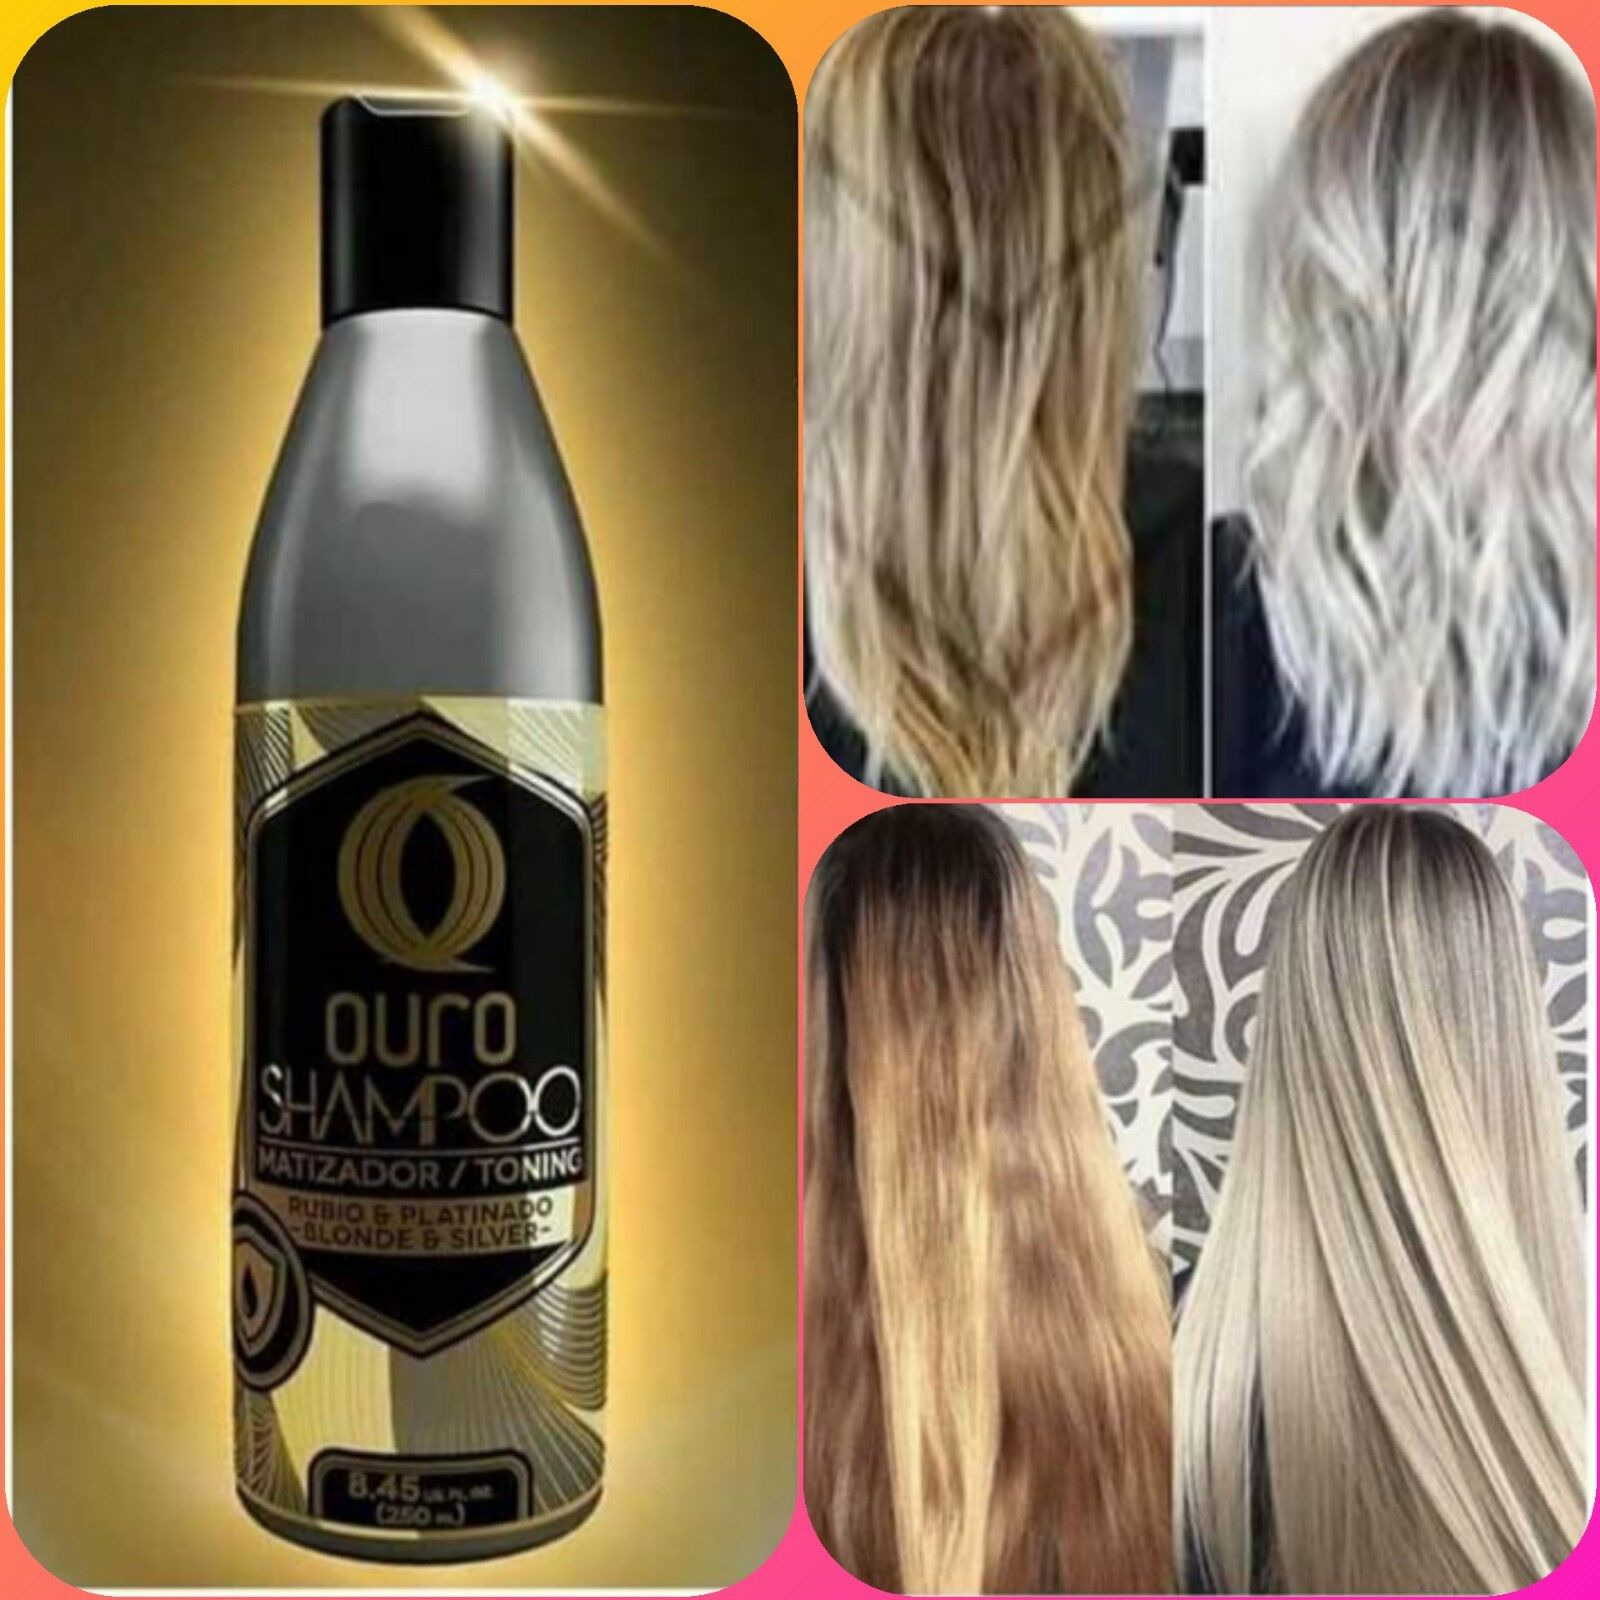 PURPLE OURO TONING SHAMPOO FOR BLONDE & SILVER HAIR 8.45oz